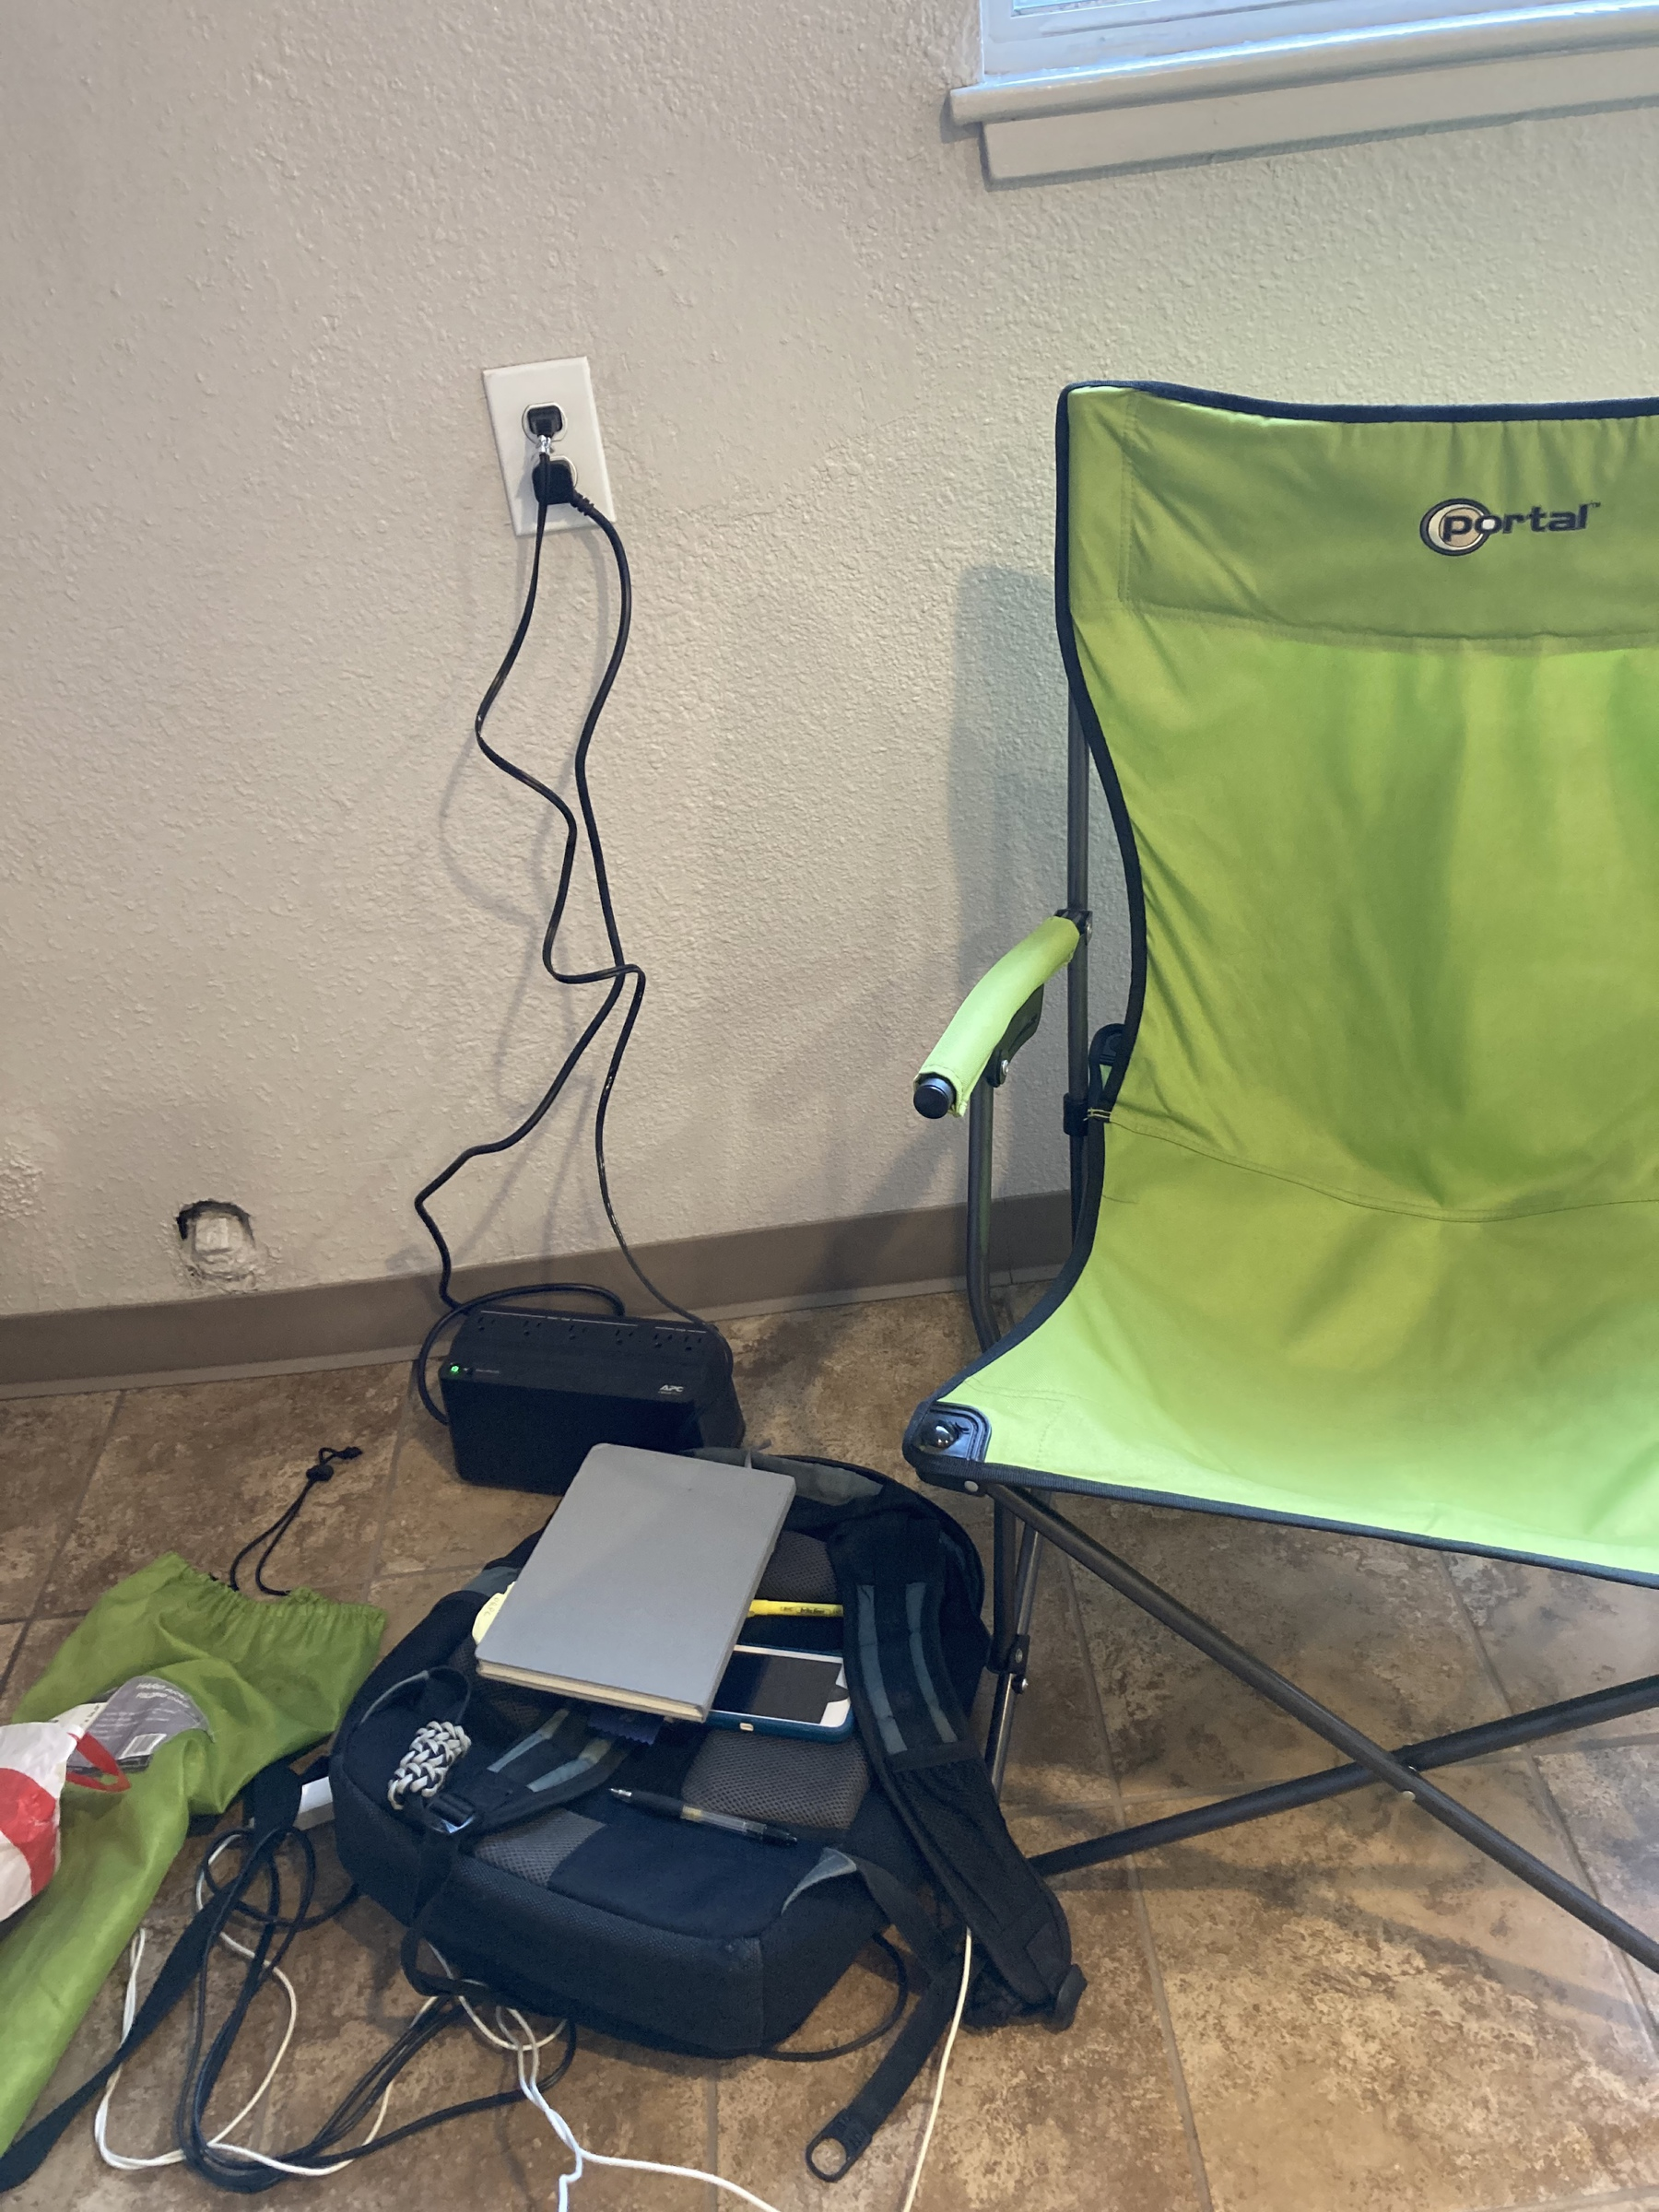 A chair next to iPhones being charged.